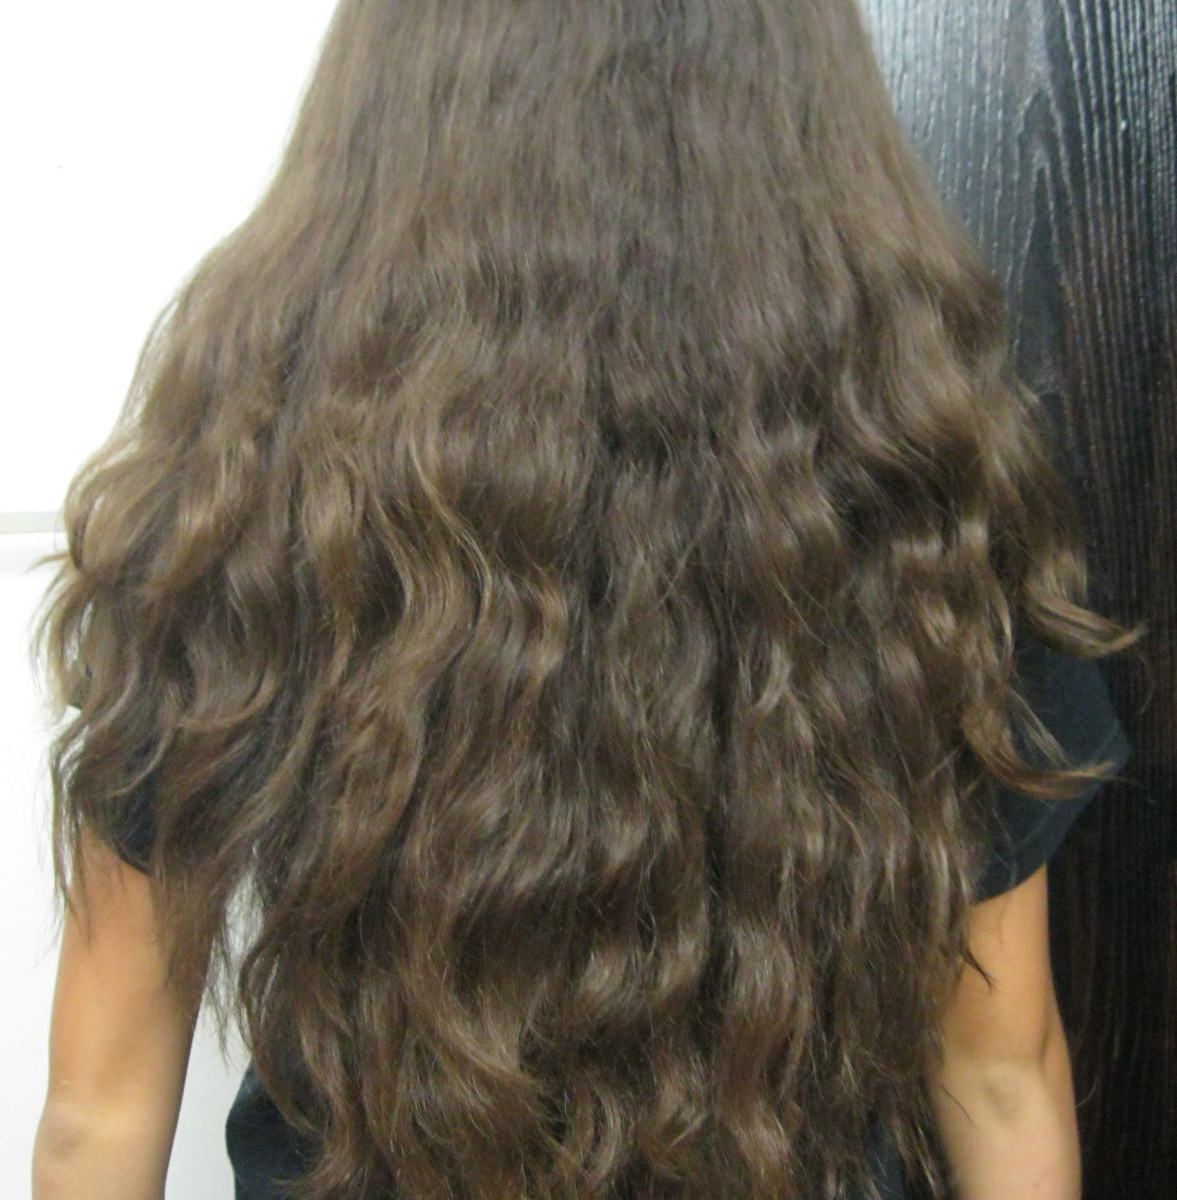 Wavy Hairstyles: Best Cuts And Styles For Long, Naturally With Regard To Preferred Long Wavy Layers Hairstyles (View 13 of 20)